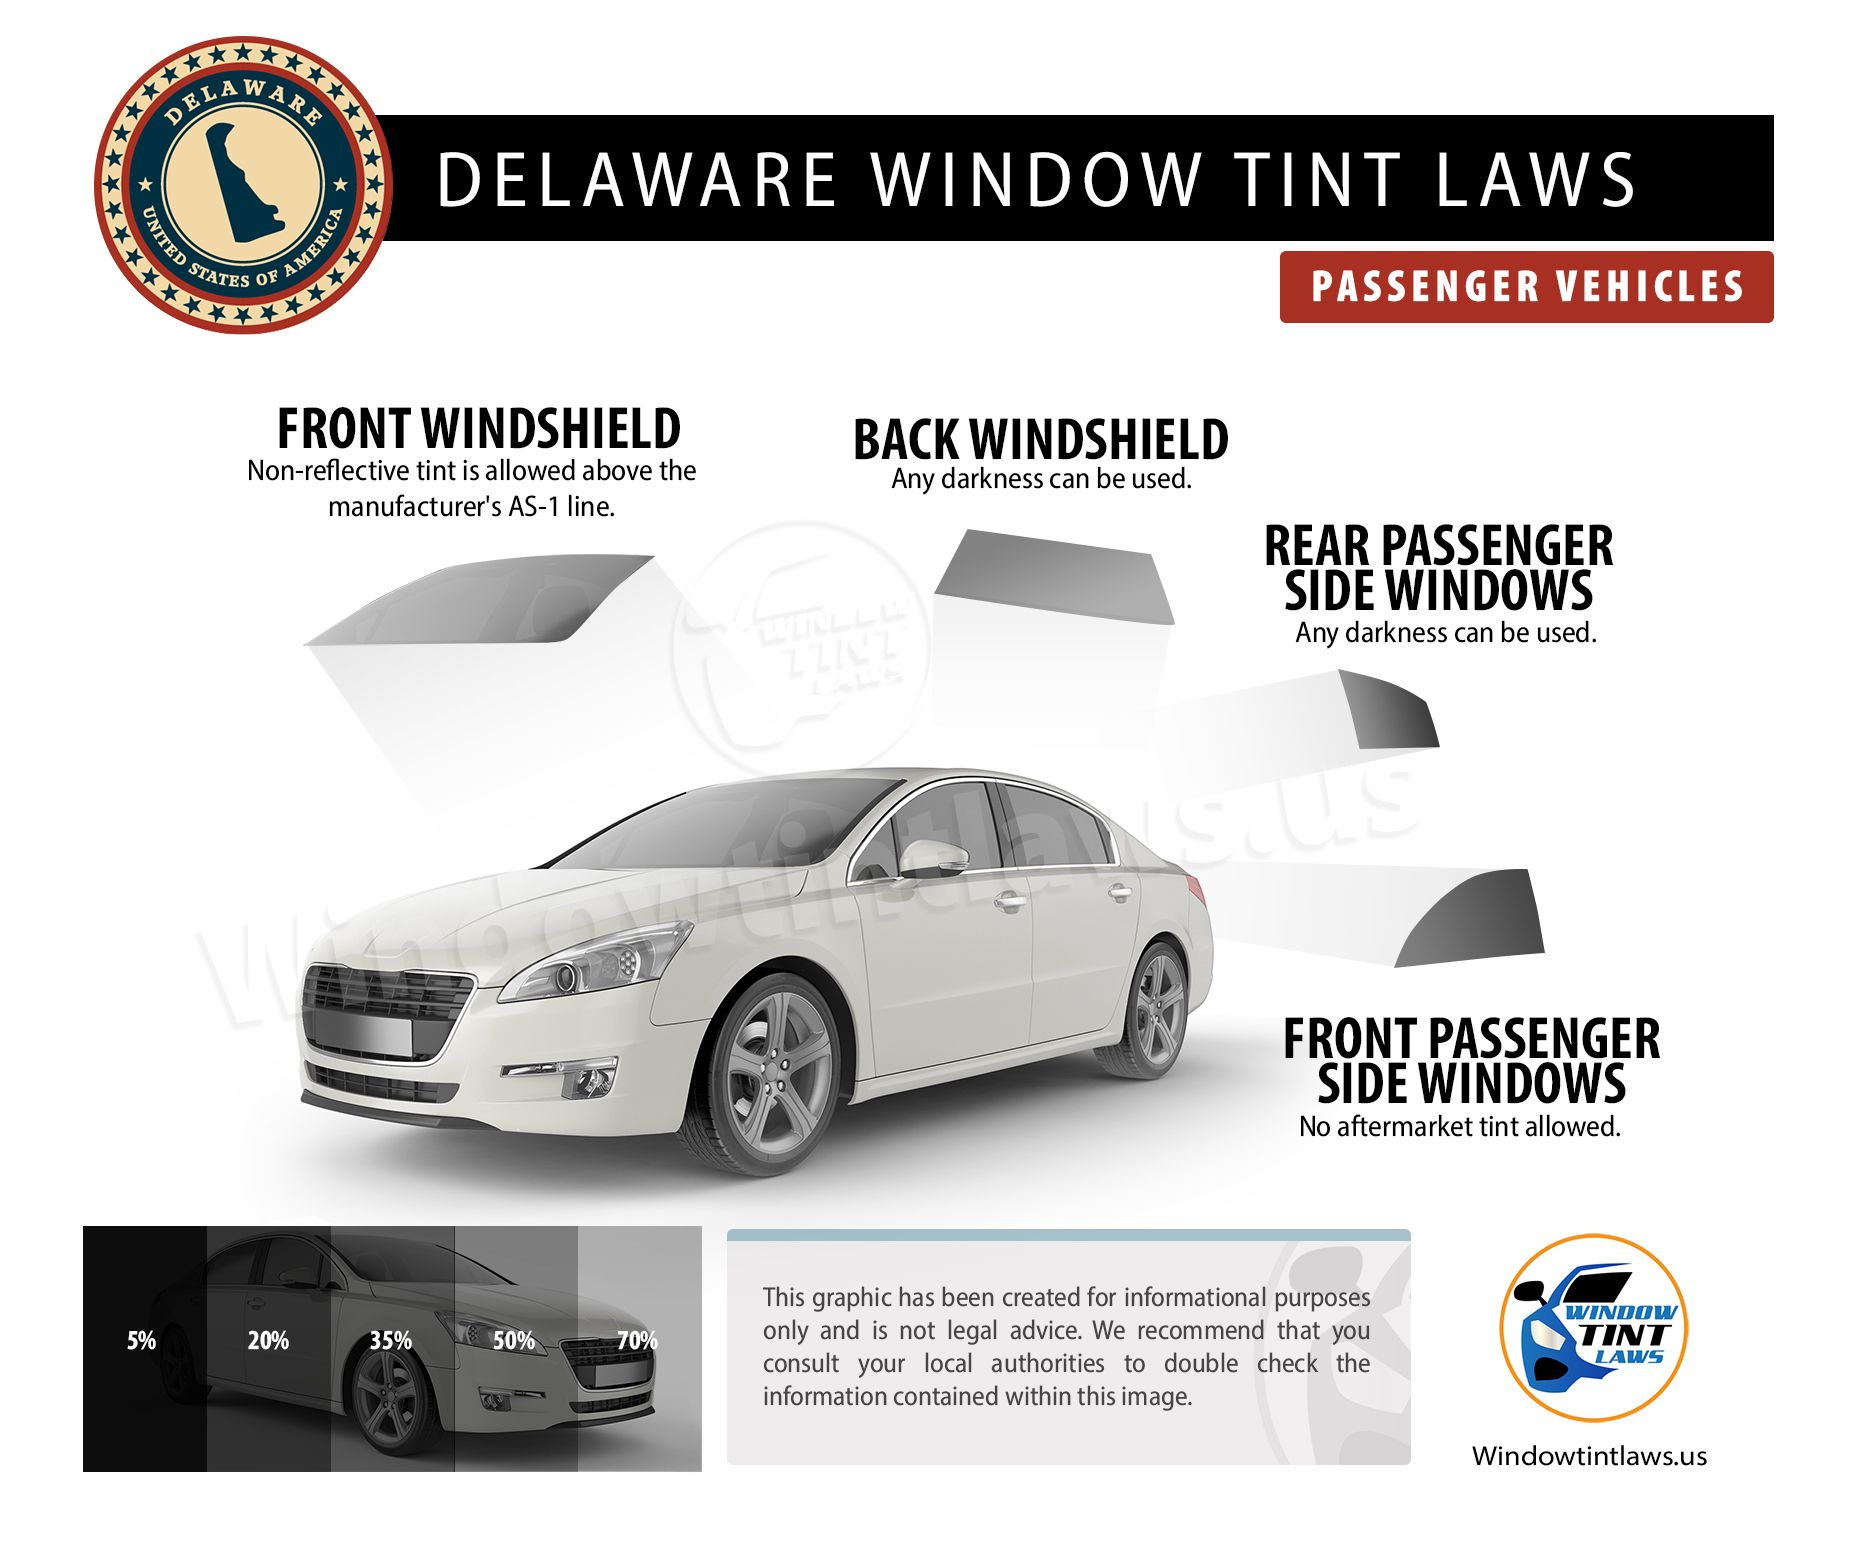 How Much Is Window Tint Ticket